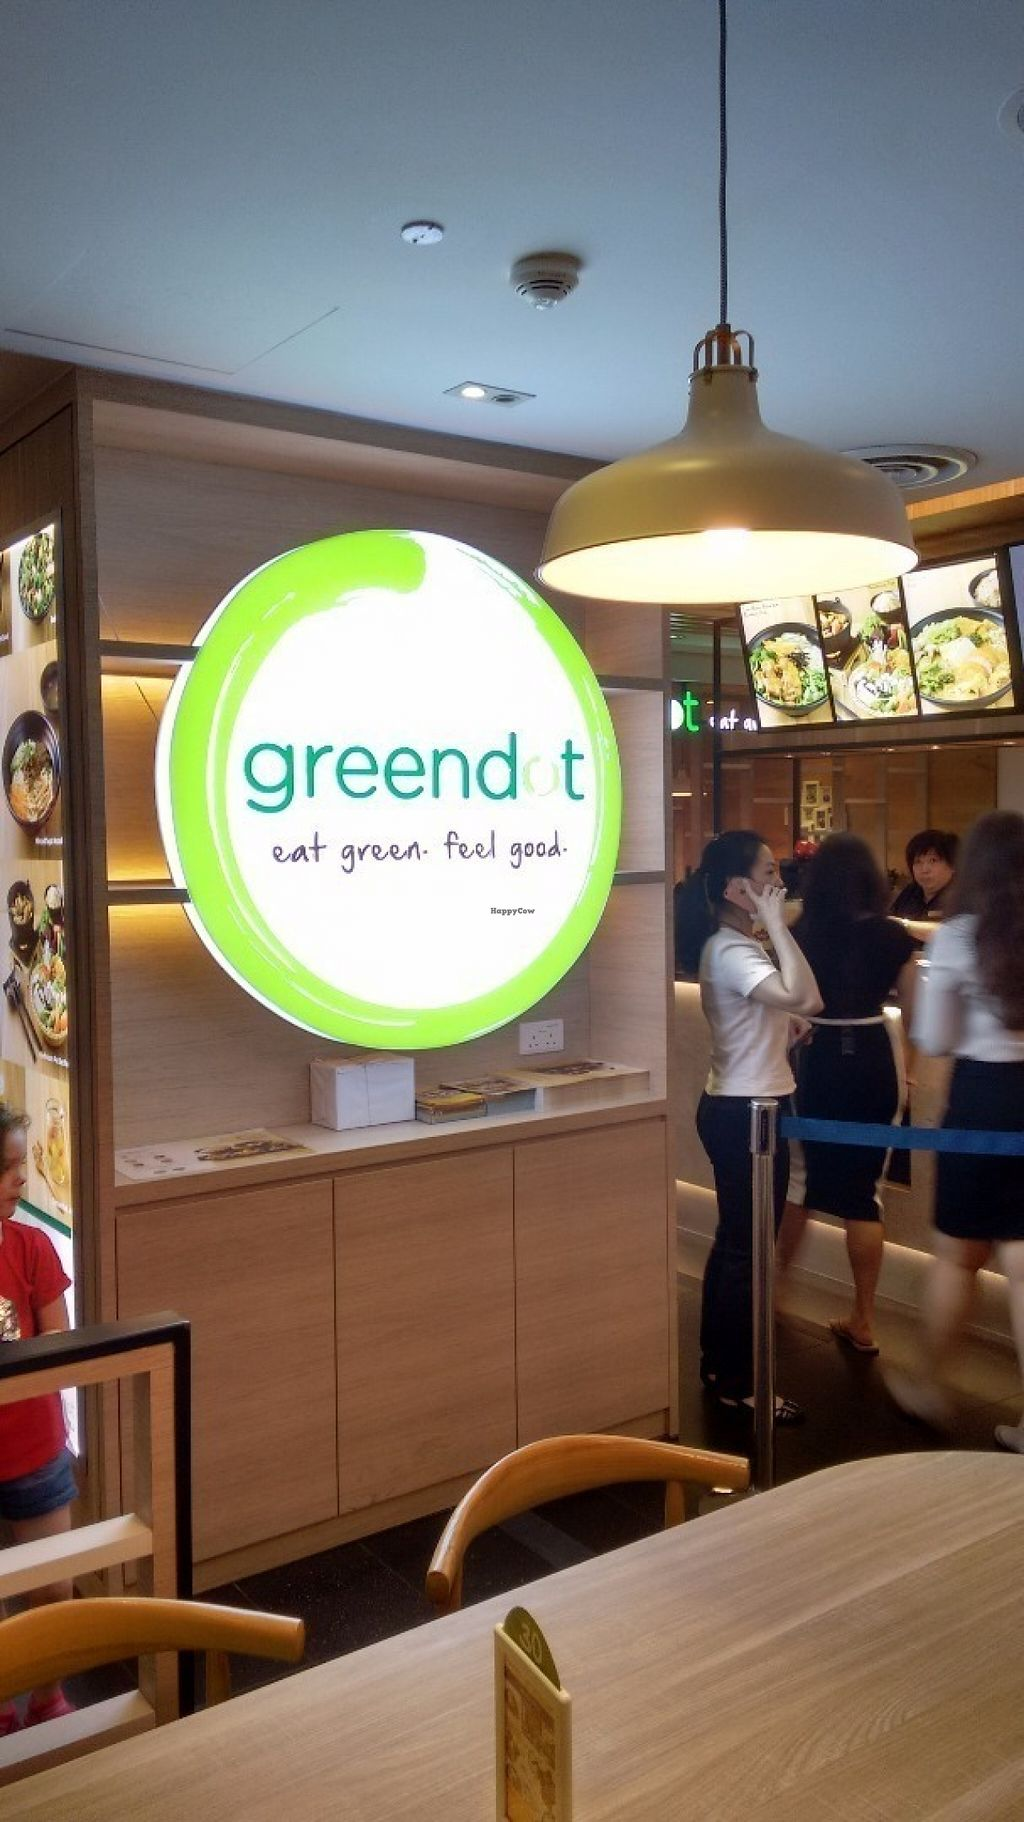 "Photo of Green Dot - Raffles Place   by <a href=""/members/profile/craigmc"">craigmc</a> <br/>Found it <br/> July 12, 2016  - <a href='/contact/abuse/image/65017/159373'>Report</a>"